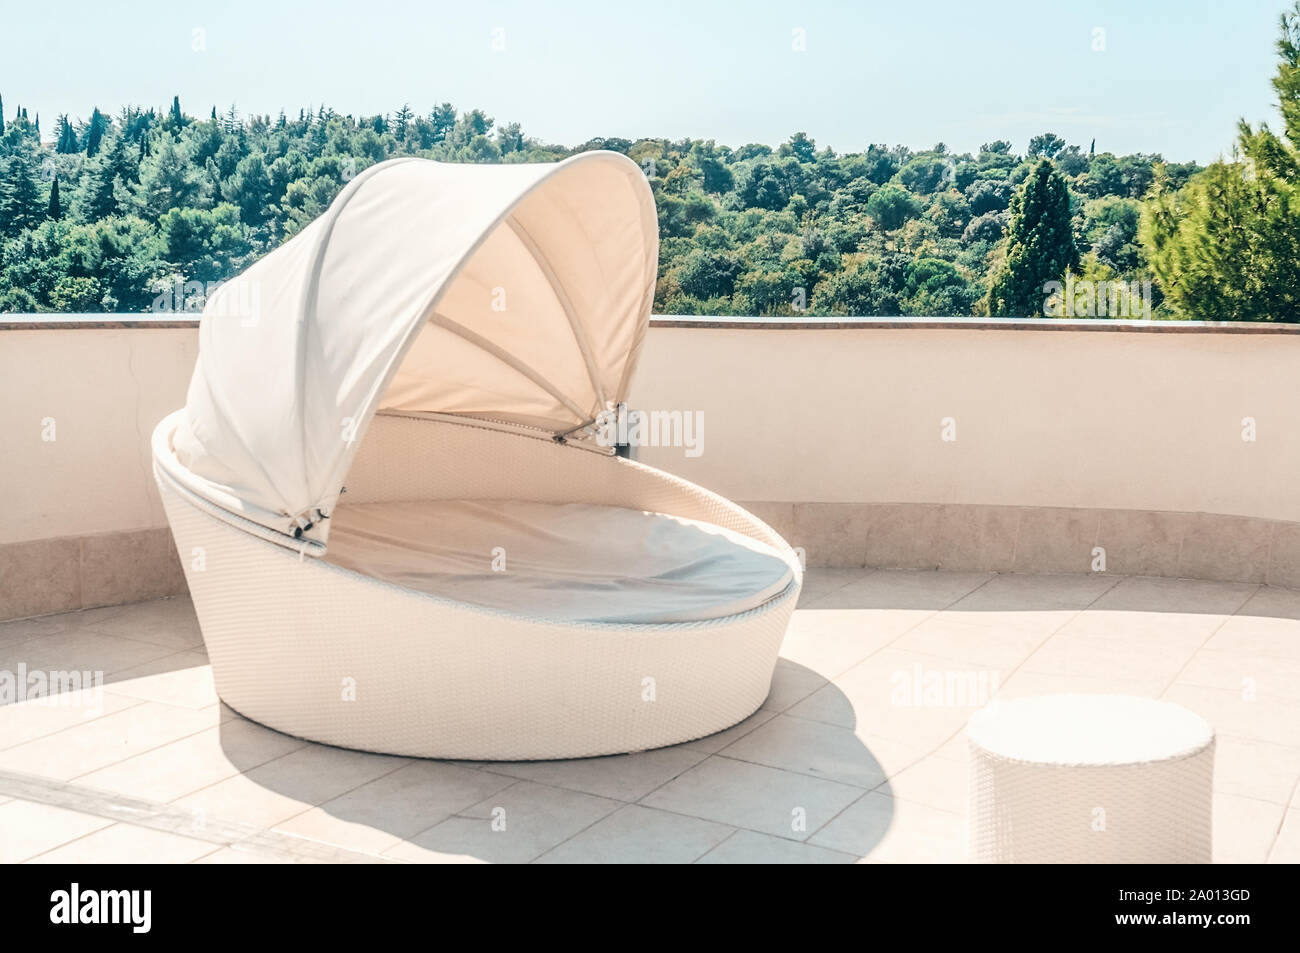 White Outdoor Furniture Round Rattan Sofa With Cushions A Place To Relax On The Terrace Of The Resort Stock Photo Alamy